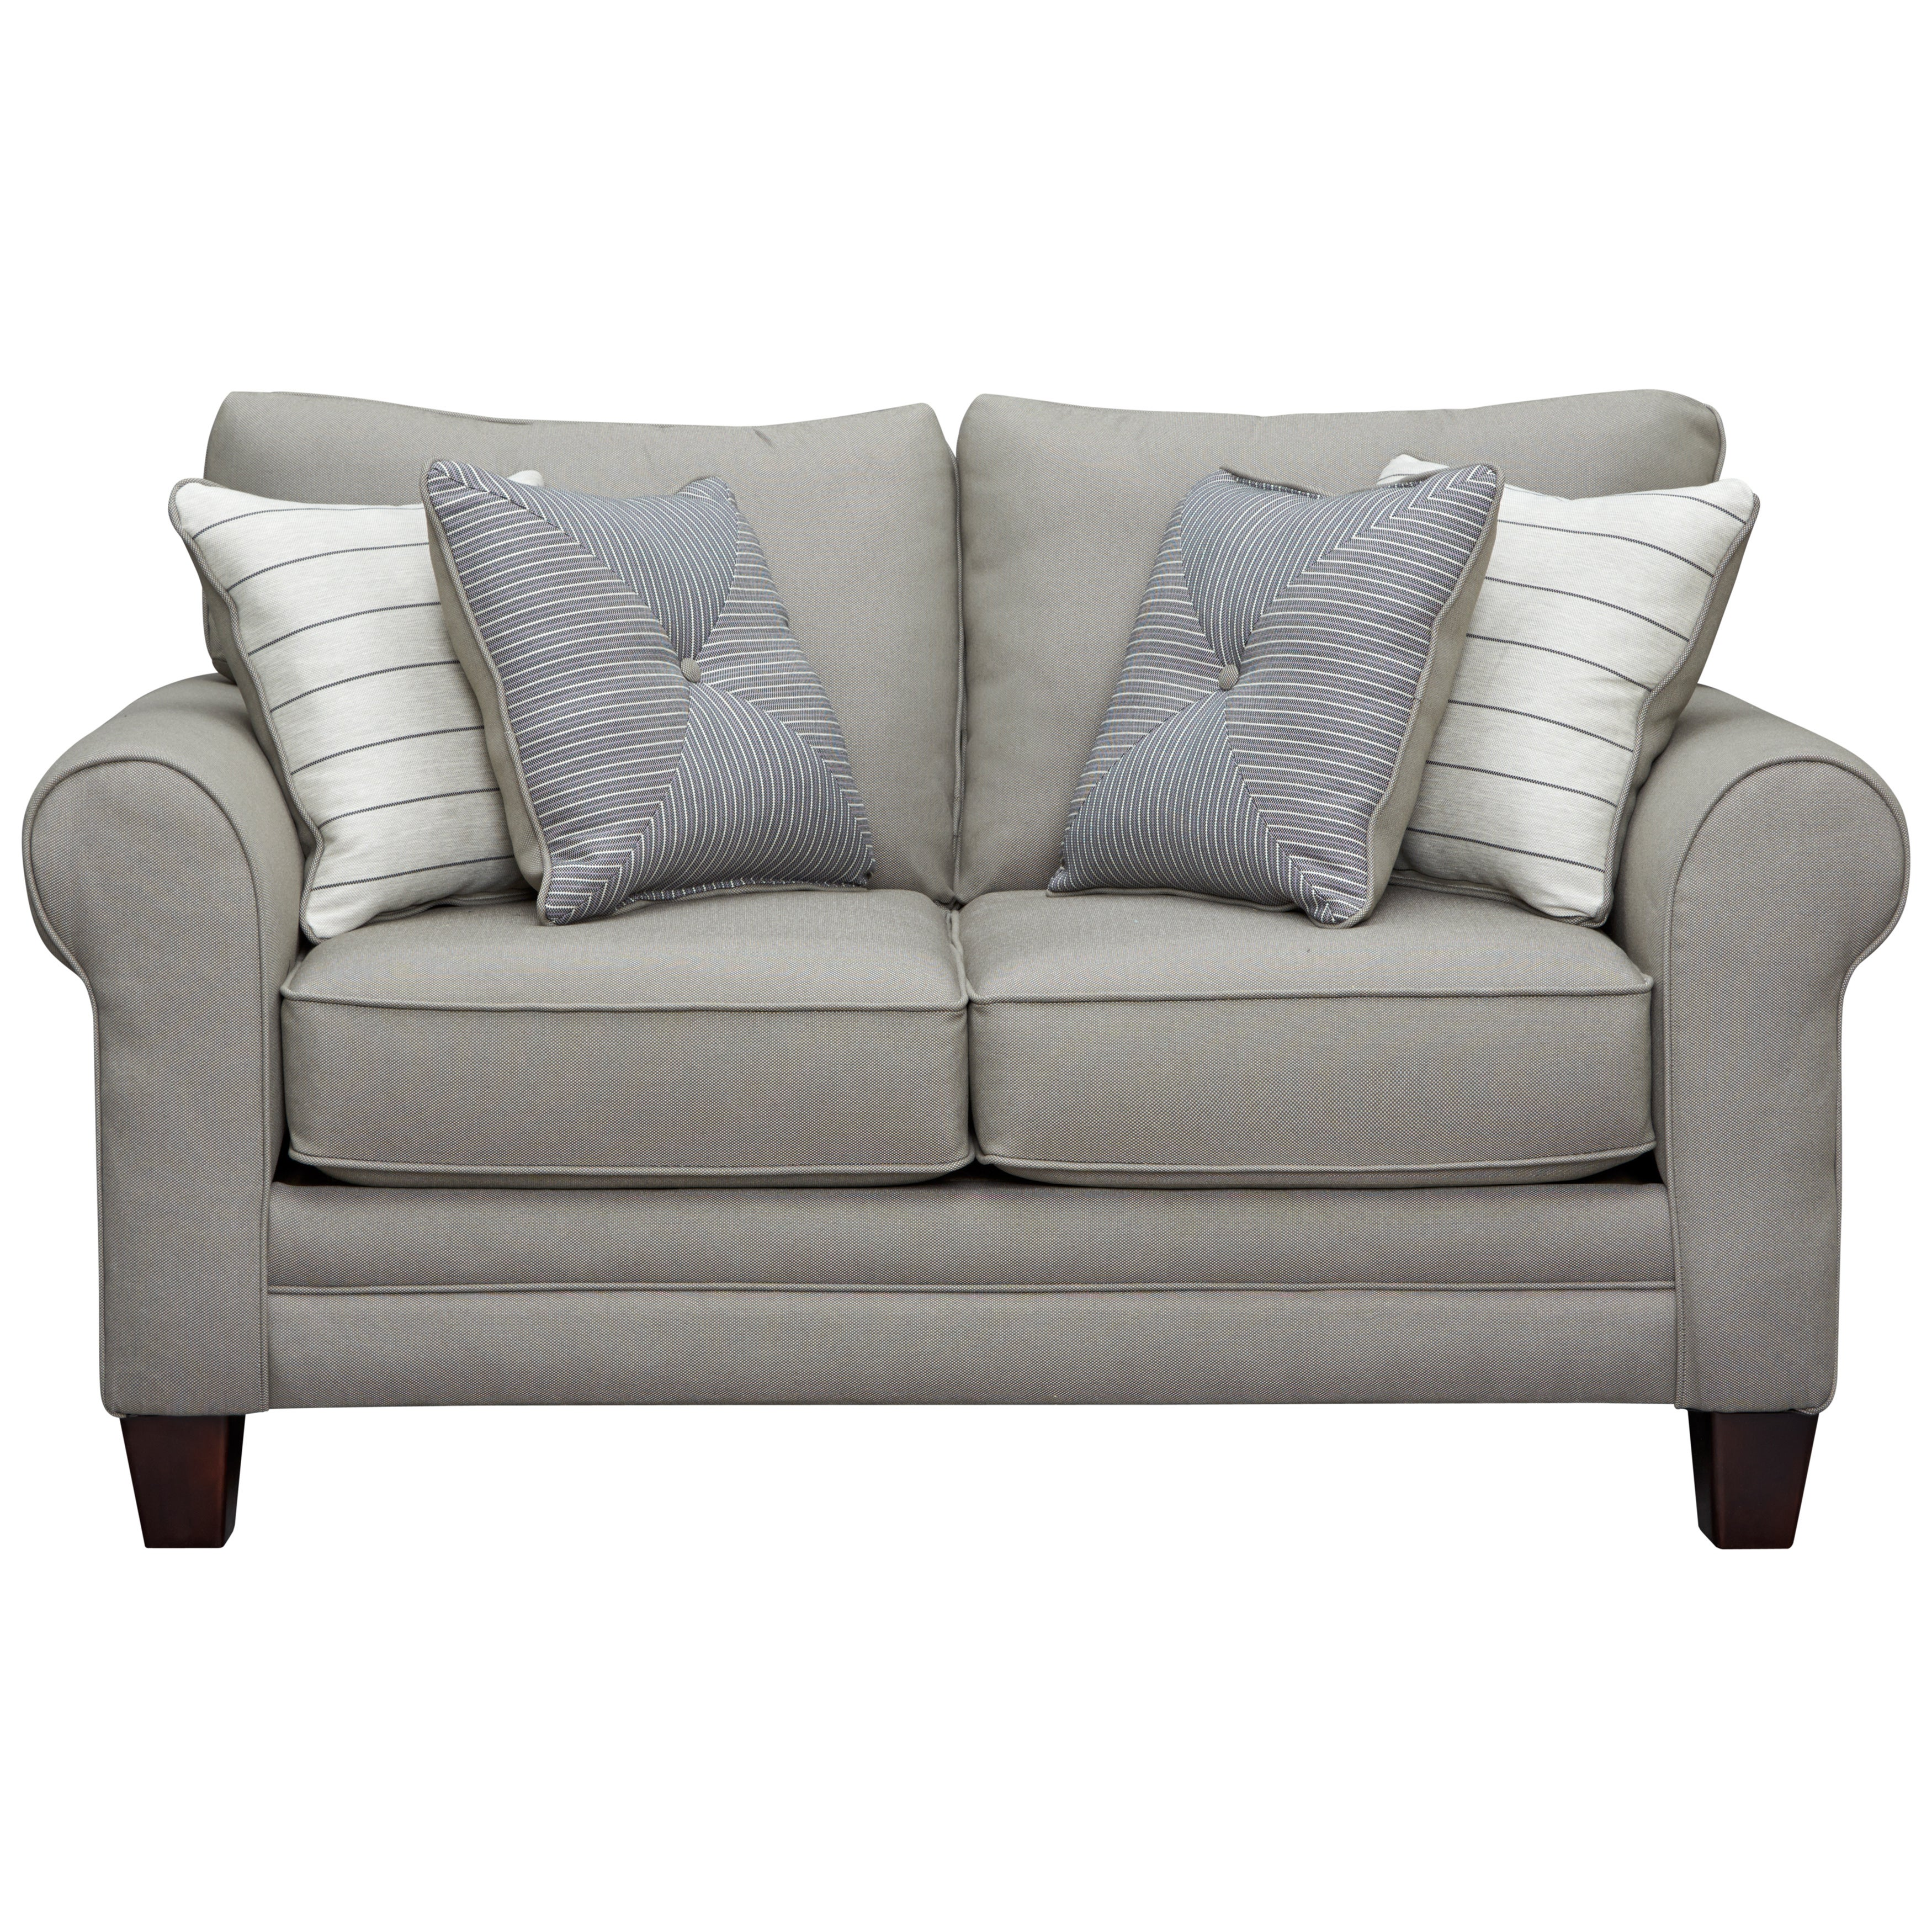 Art Van Calypso Loveseat 17101900 Shopping Great Deals On Sofas Loveseats